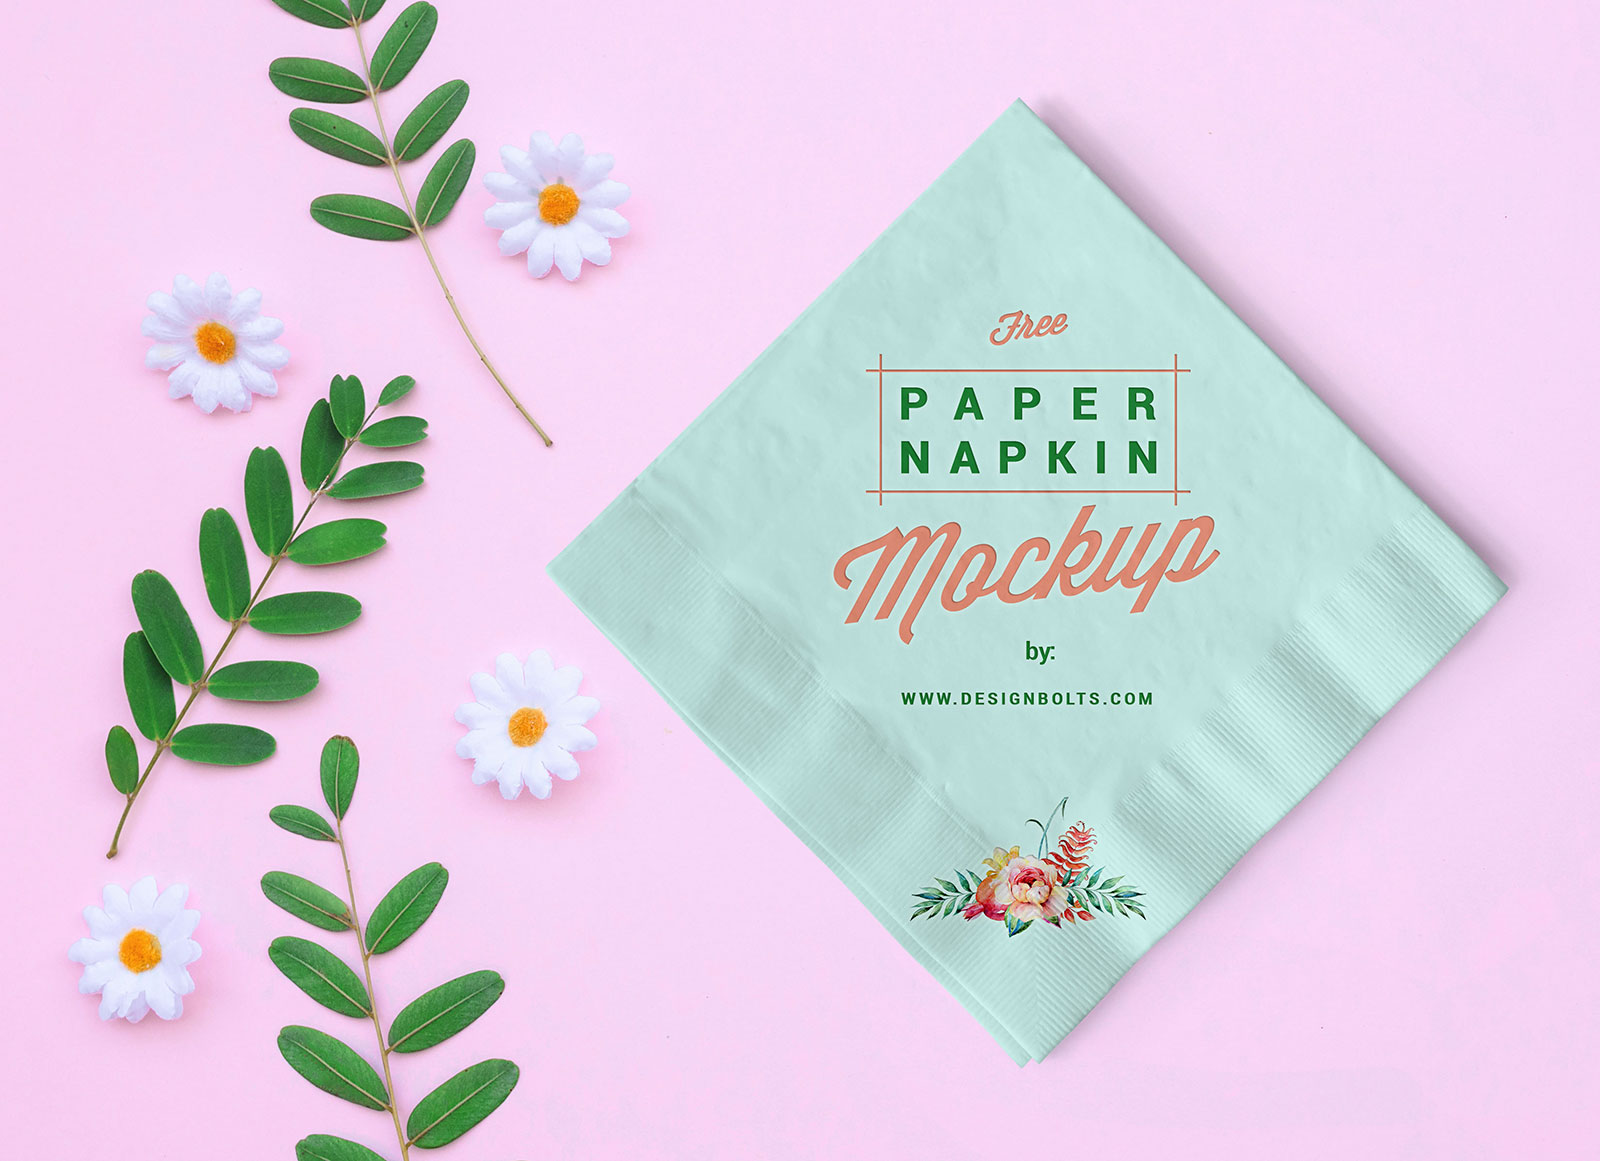 Free-Table-Paper-Napkin-Mockup-PSD-2